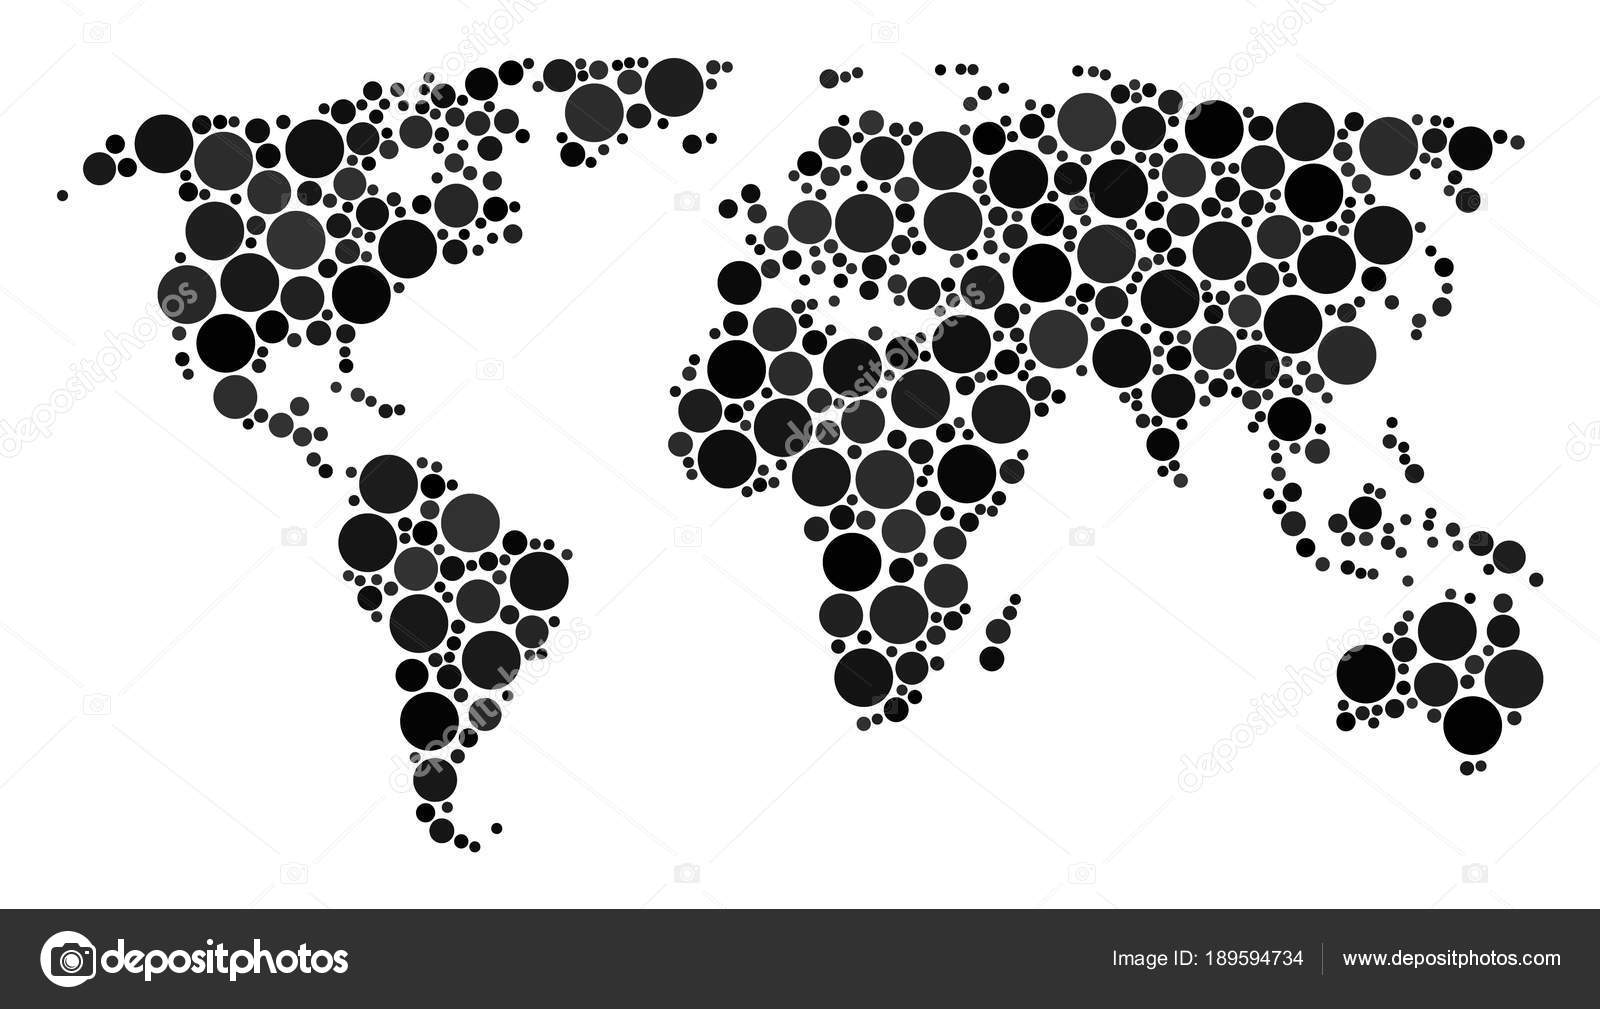 World map collage of dots stock vector ahasoft 189594734 world map collage of dots stock vector gumiabroncs